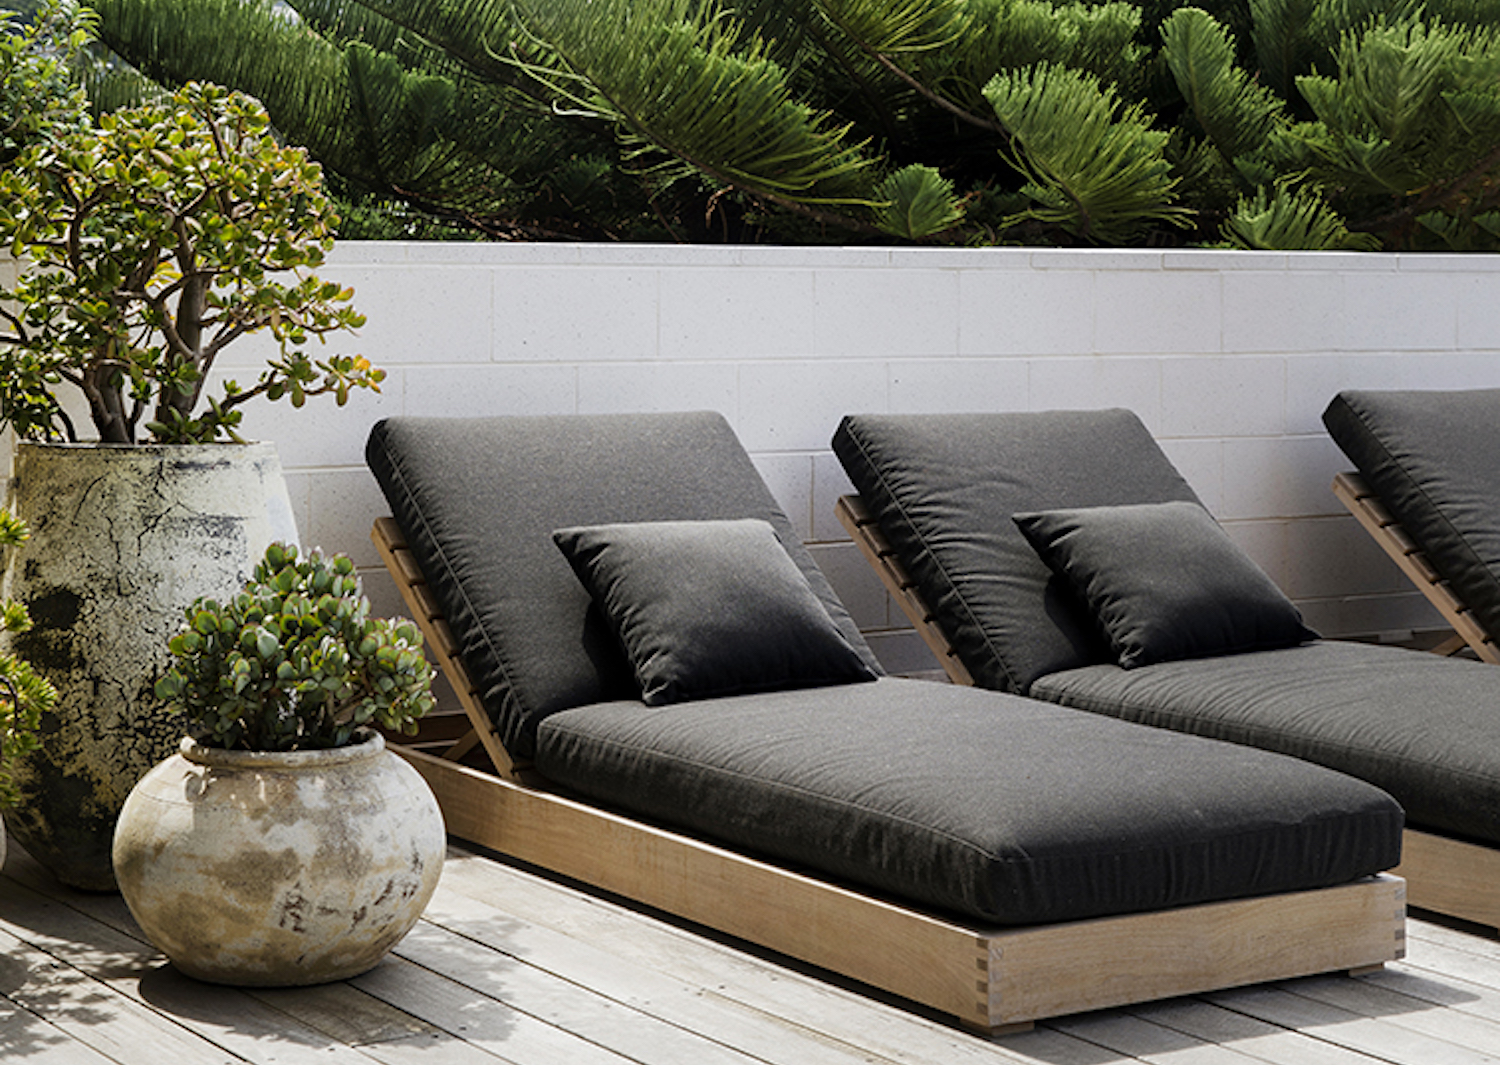 Our Burleigh Daybeds are generously proportioned for ultimate poolside comfort